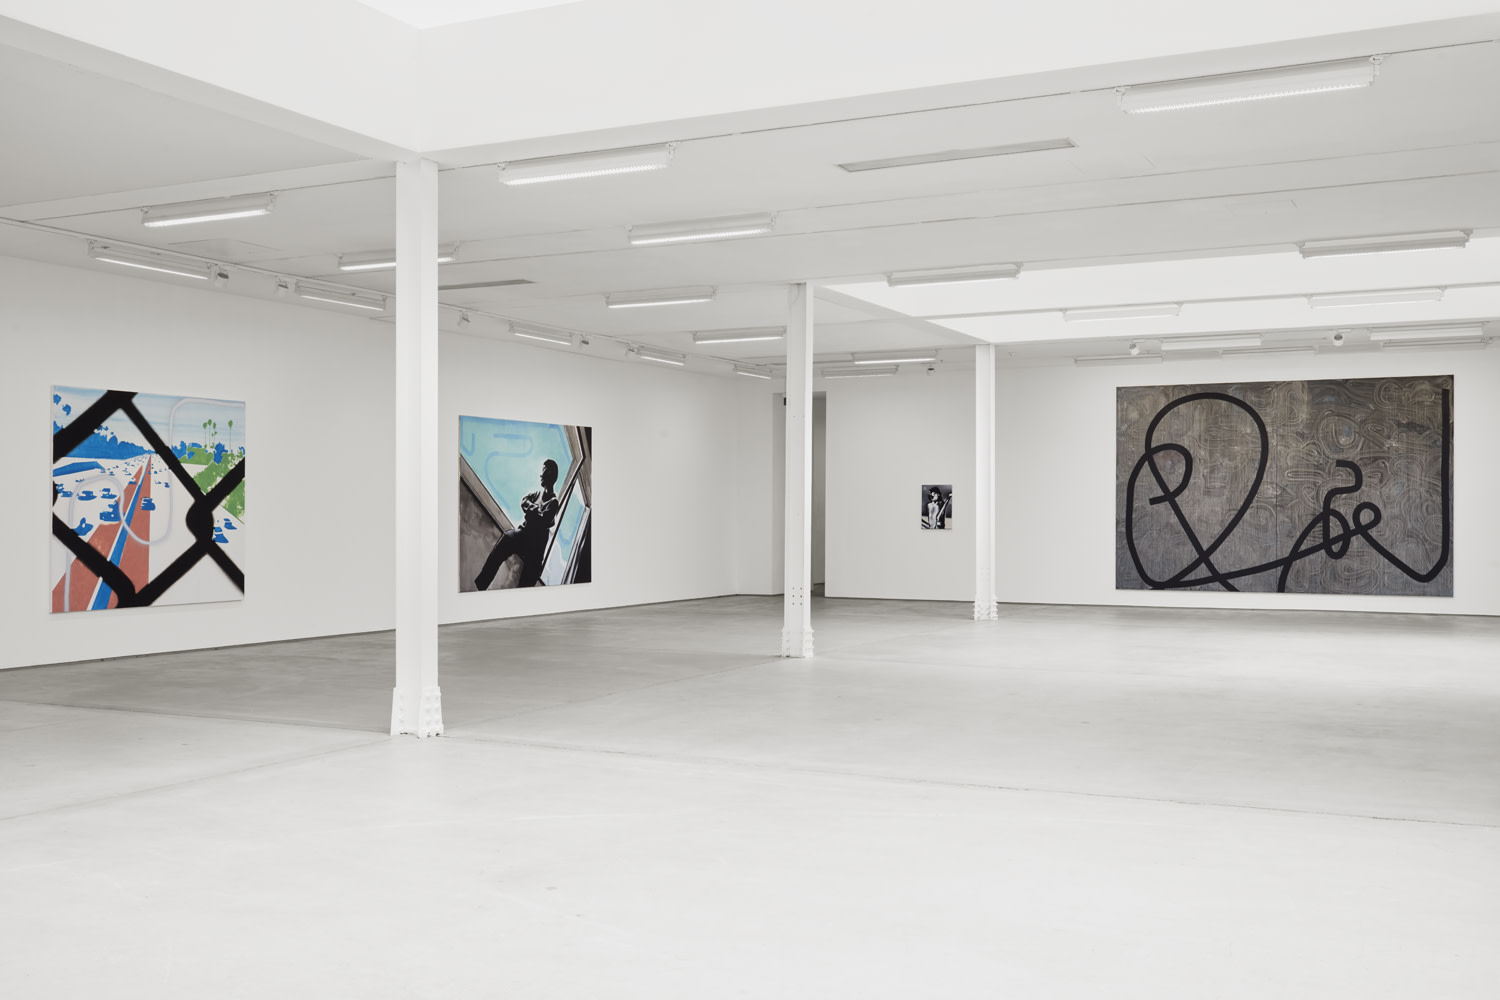 "<div class=""artwork_caption""><p>Installation view, Wilhelm Sasnal, 62 Kingly Street W1, 3 September - 17 October 2020</p><p>Photography by Robert Glowacki</p></div>"